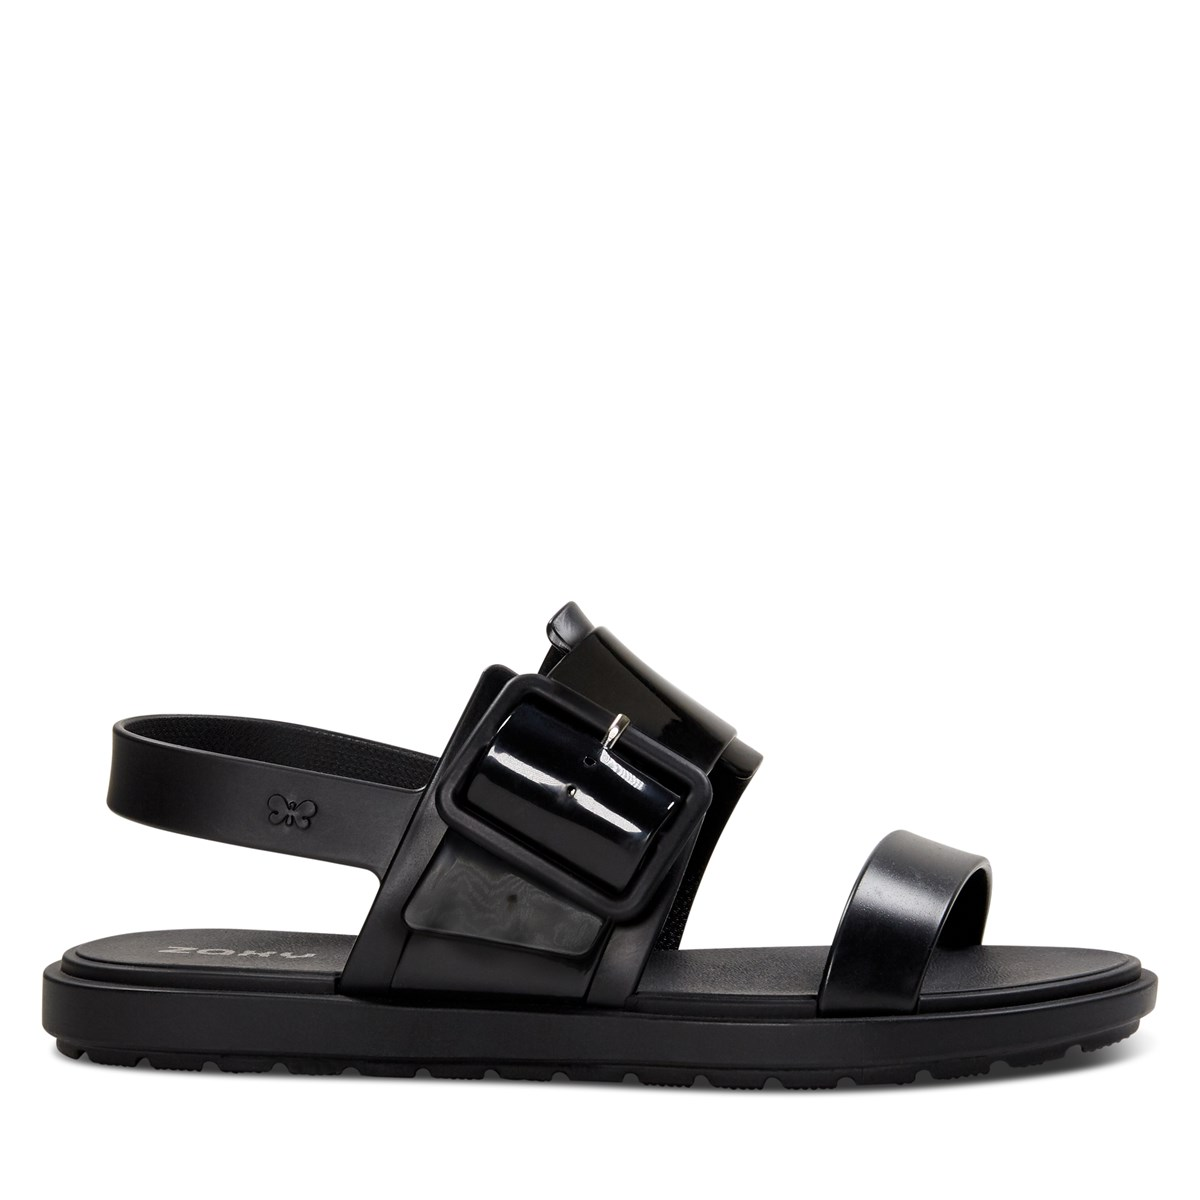 Women's Rush Sandals in Black